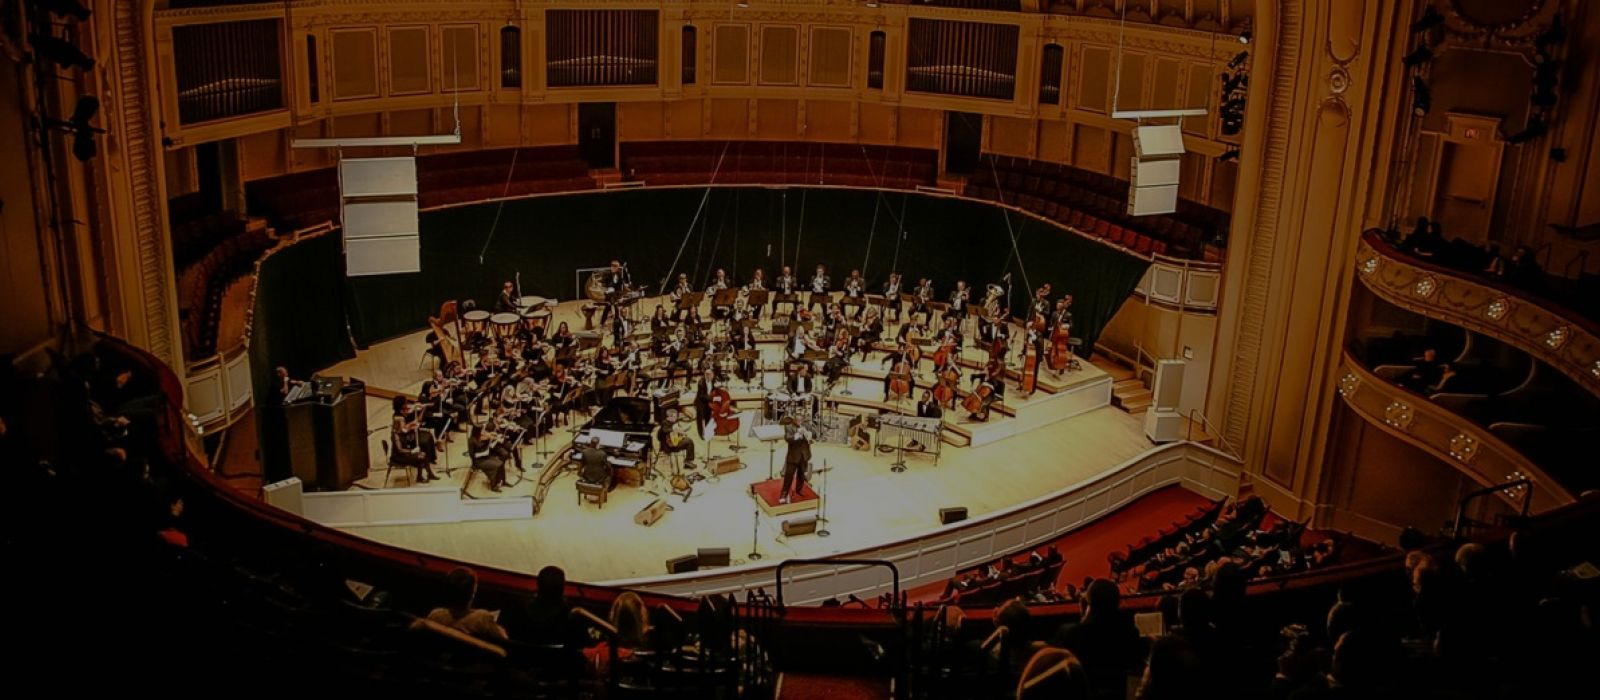 America's definitive 'third stream' orchestra combining jazz and classical music.